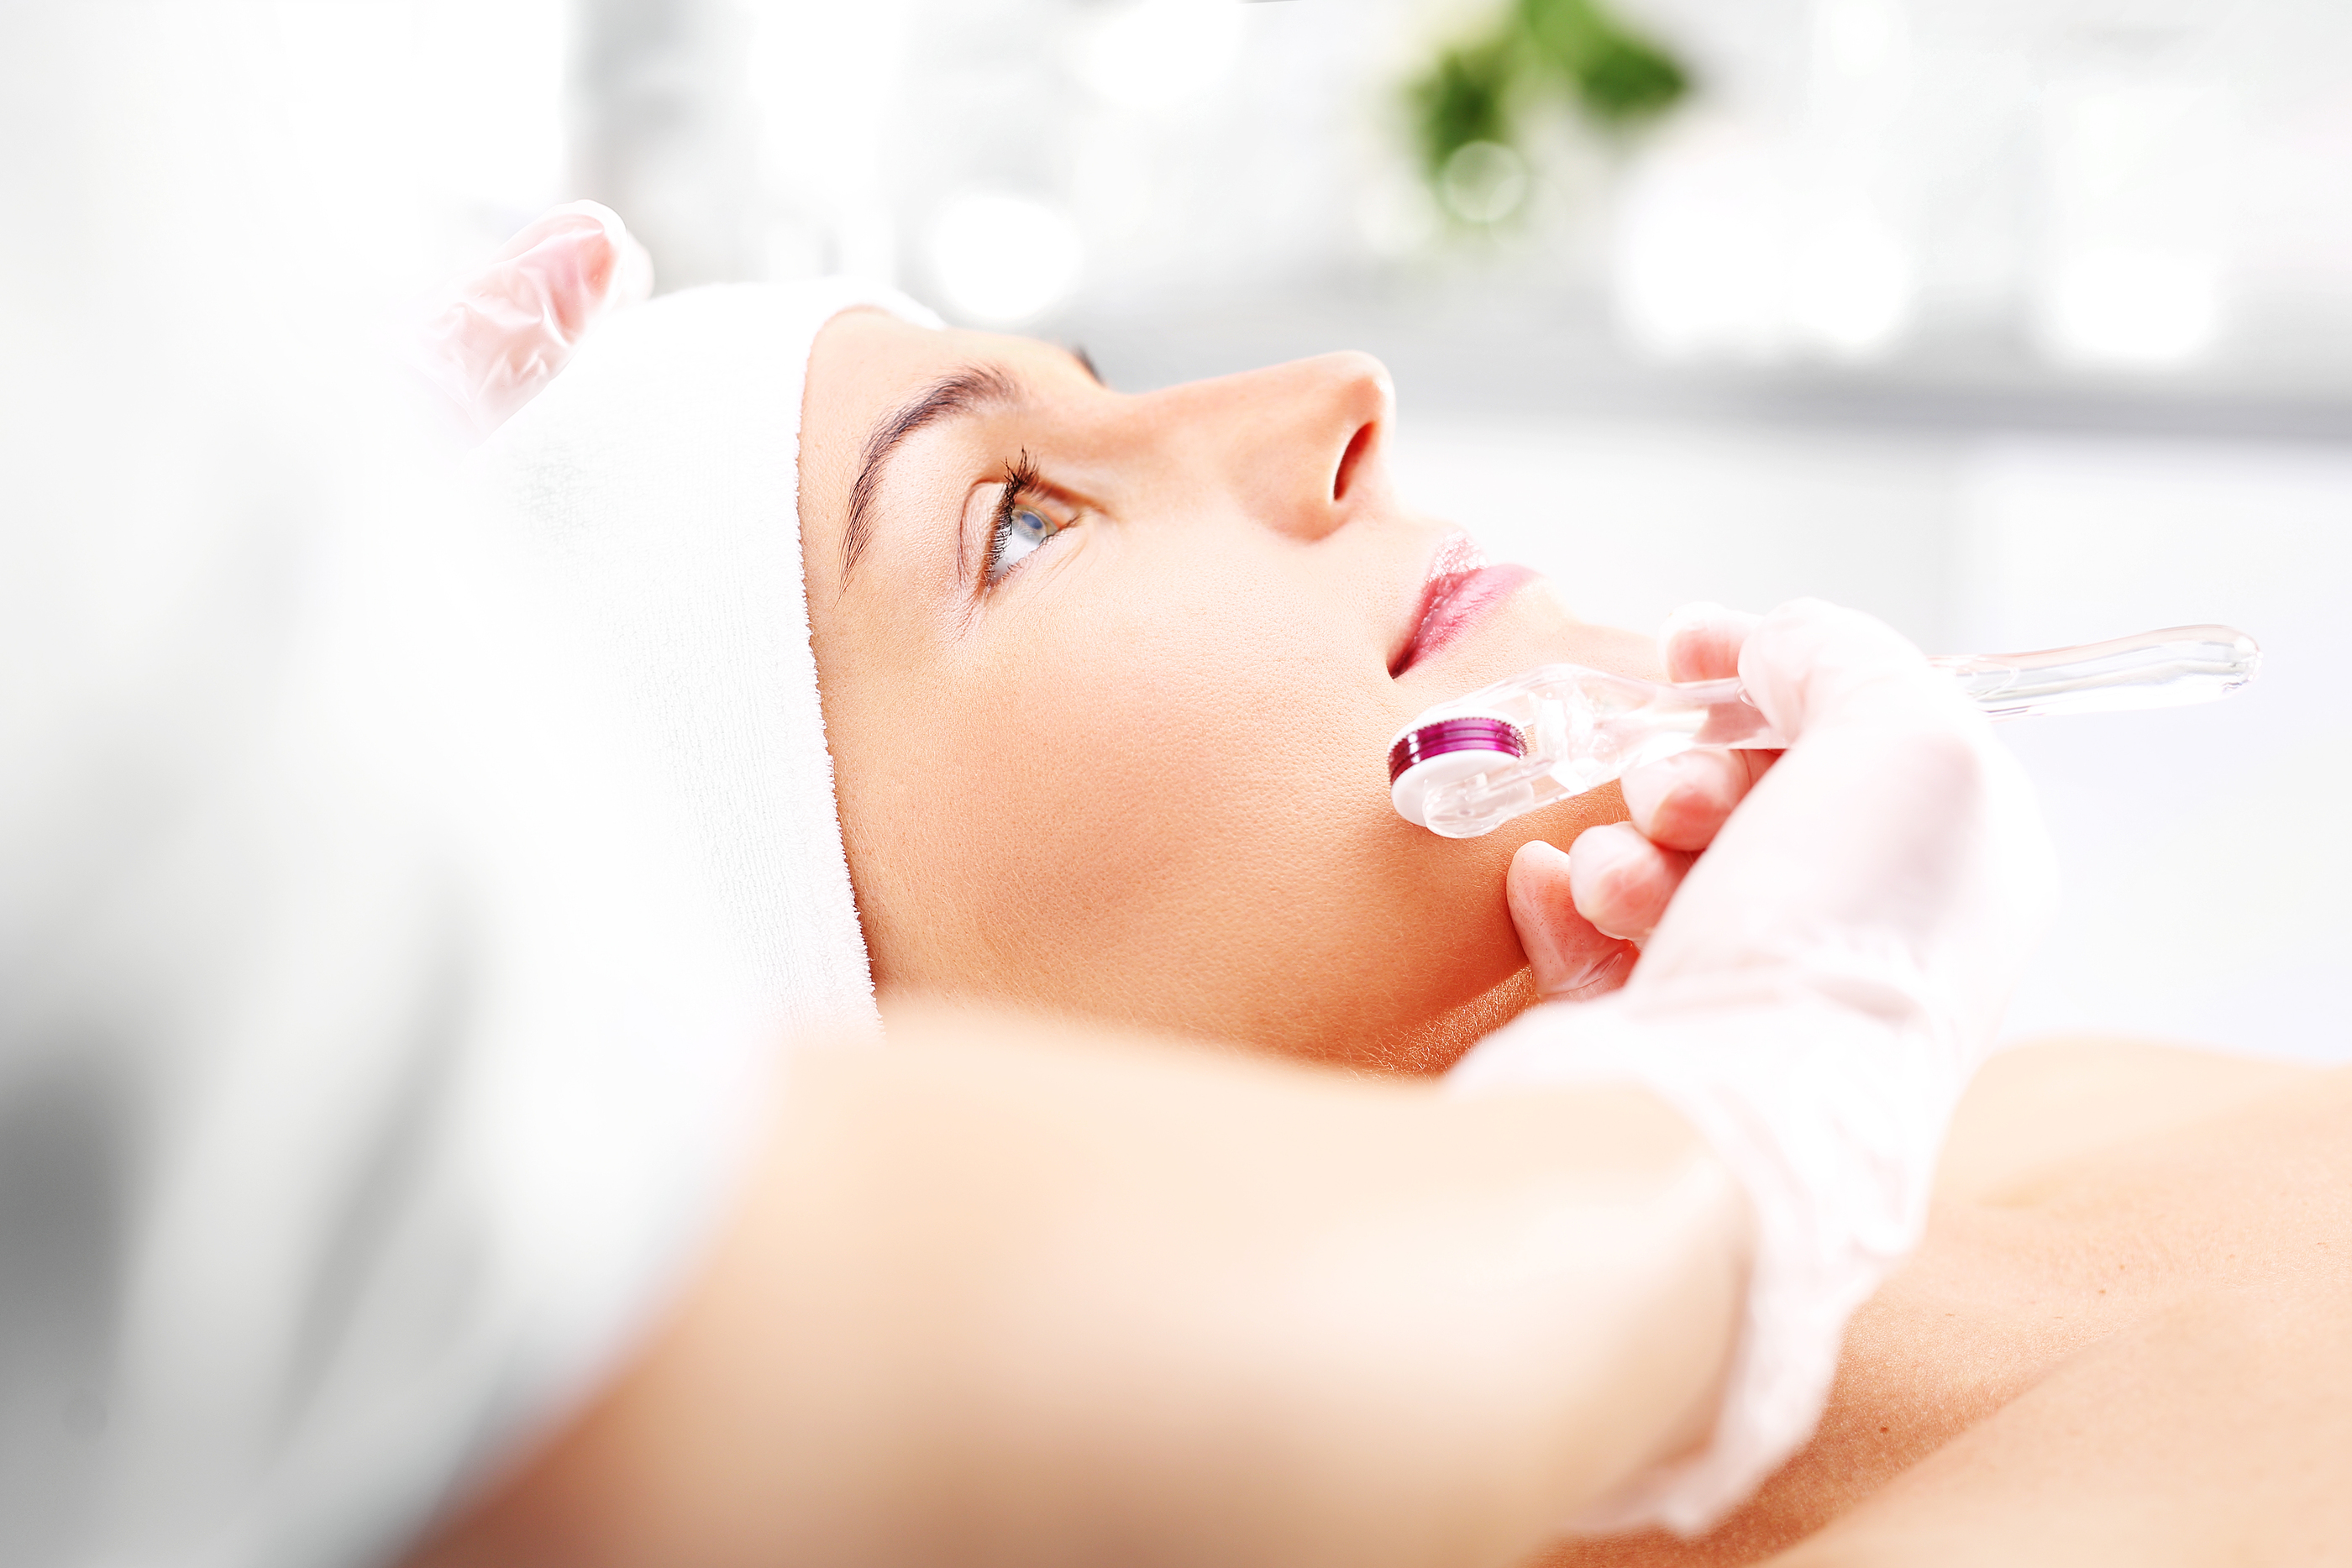 Laser Skin Resurfacing vs. Microneedling: Which Is Better?